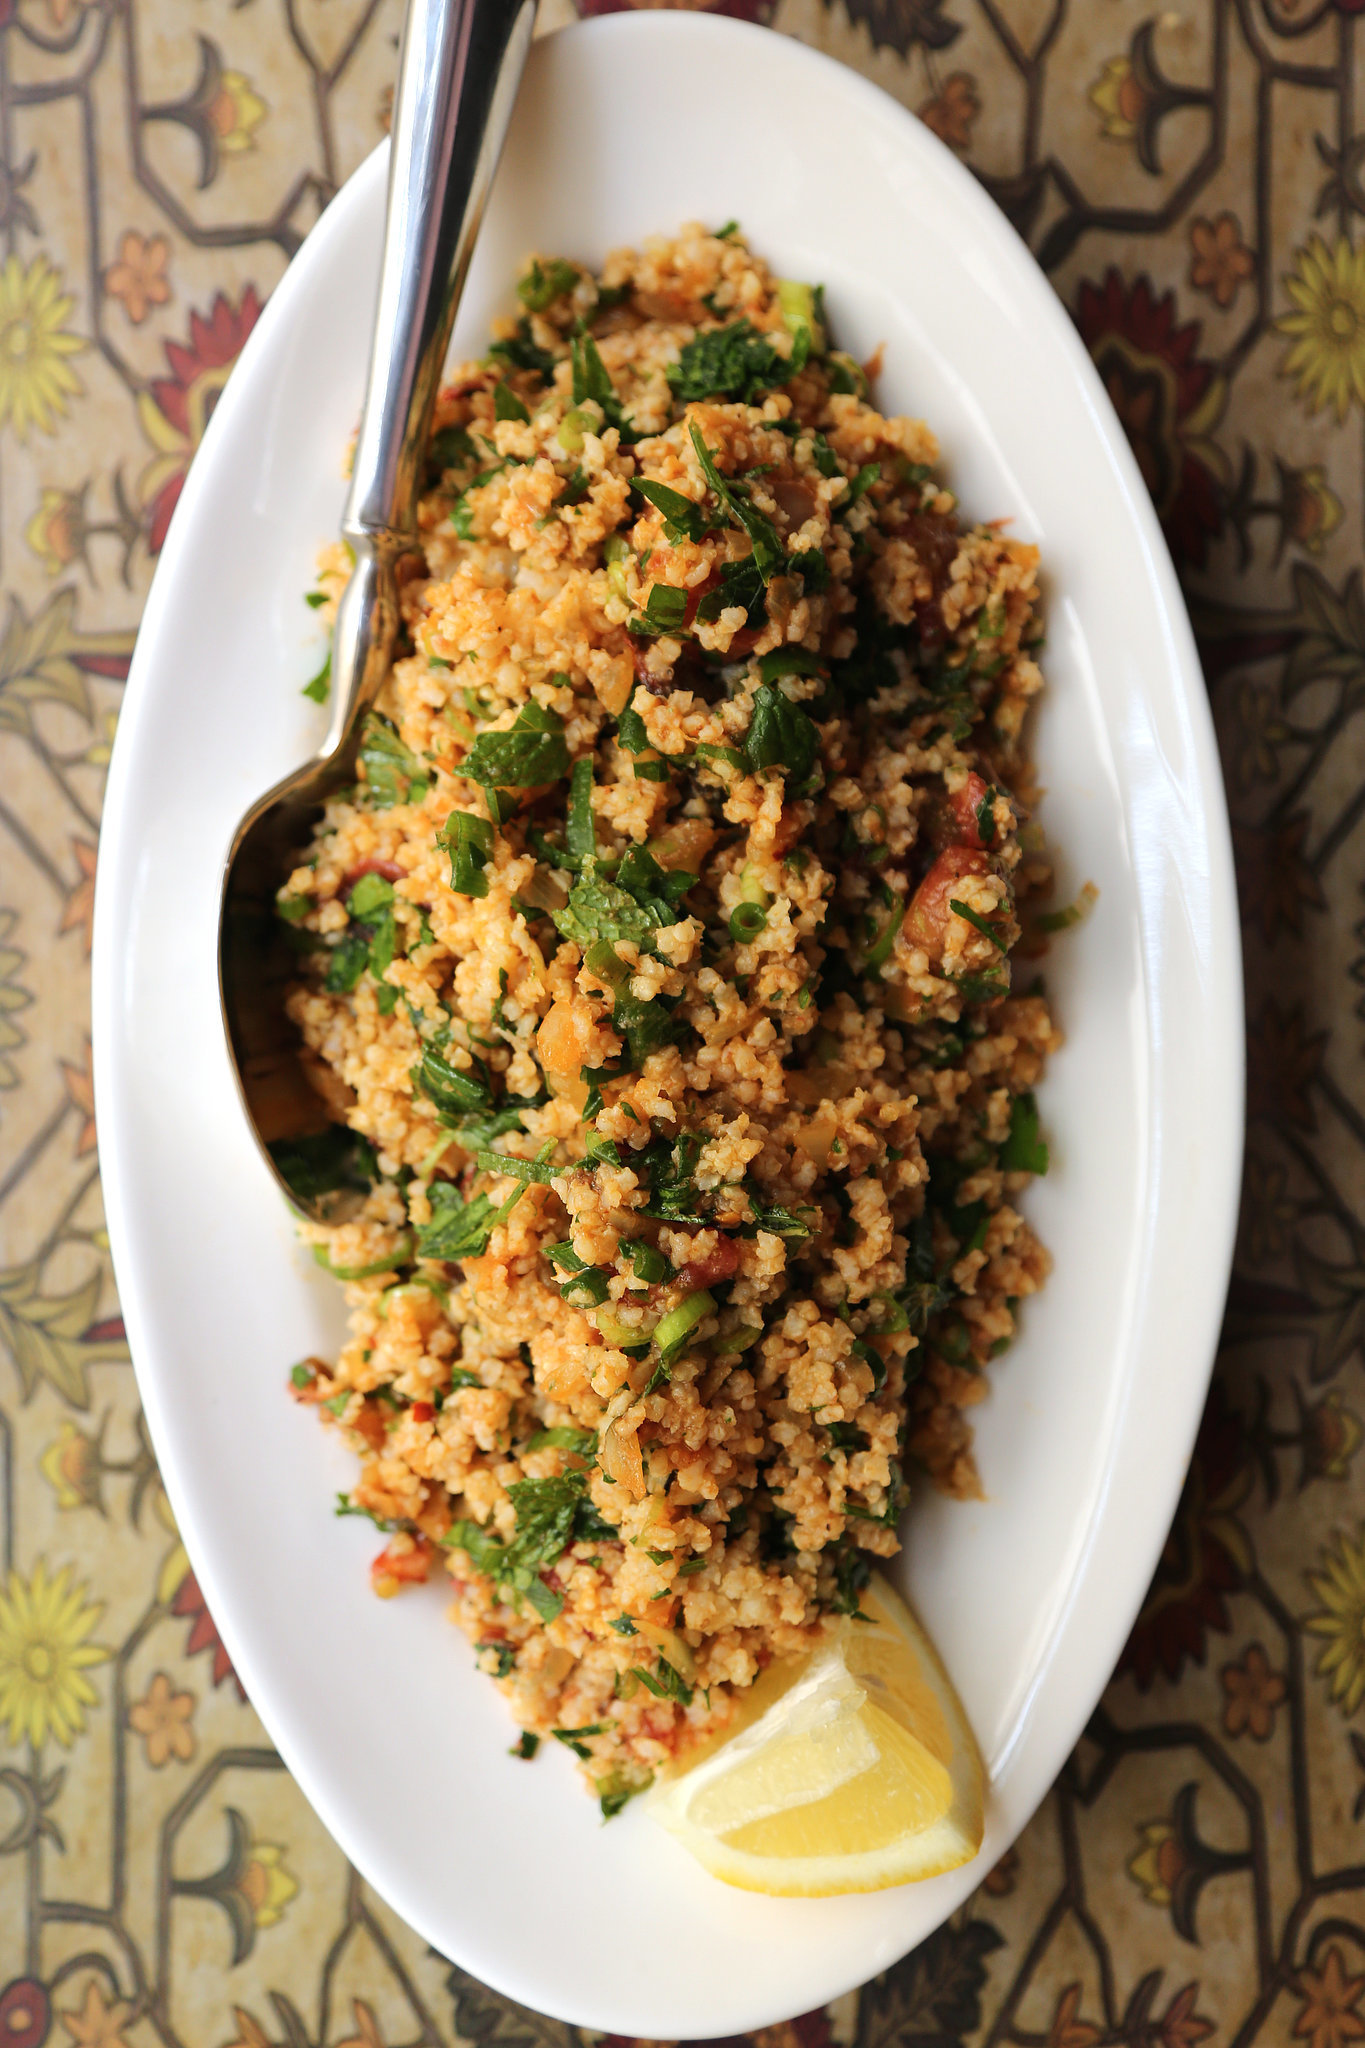 Fast, Easy, Healthy Recipe For Quinoa Tabbouleh | POPSUGAR Food